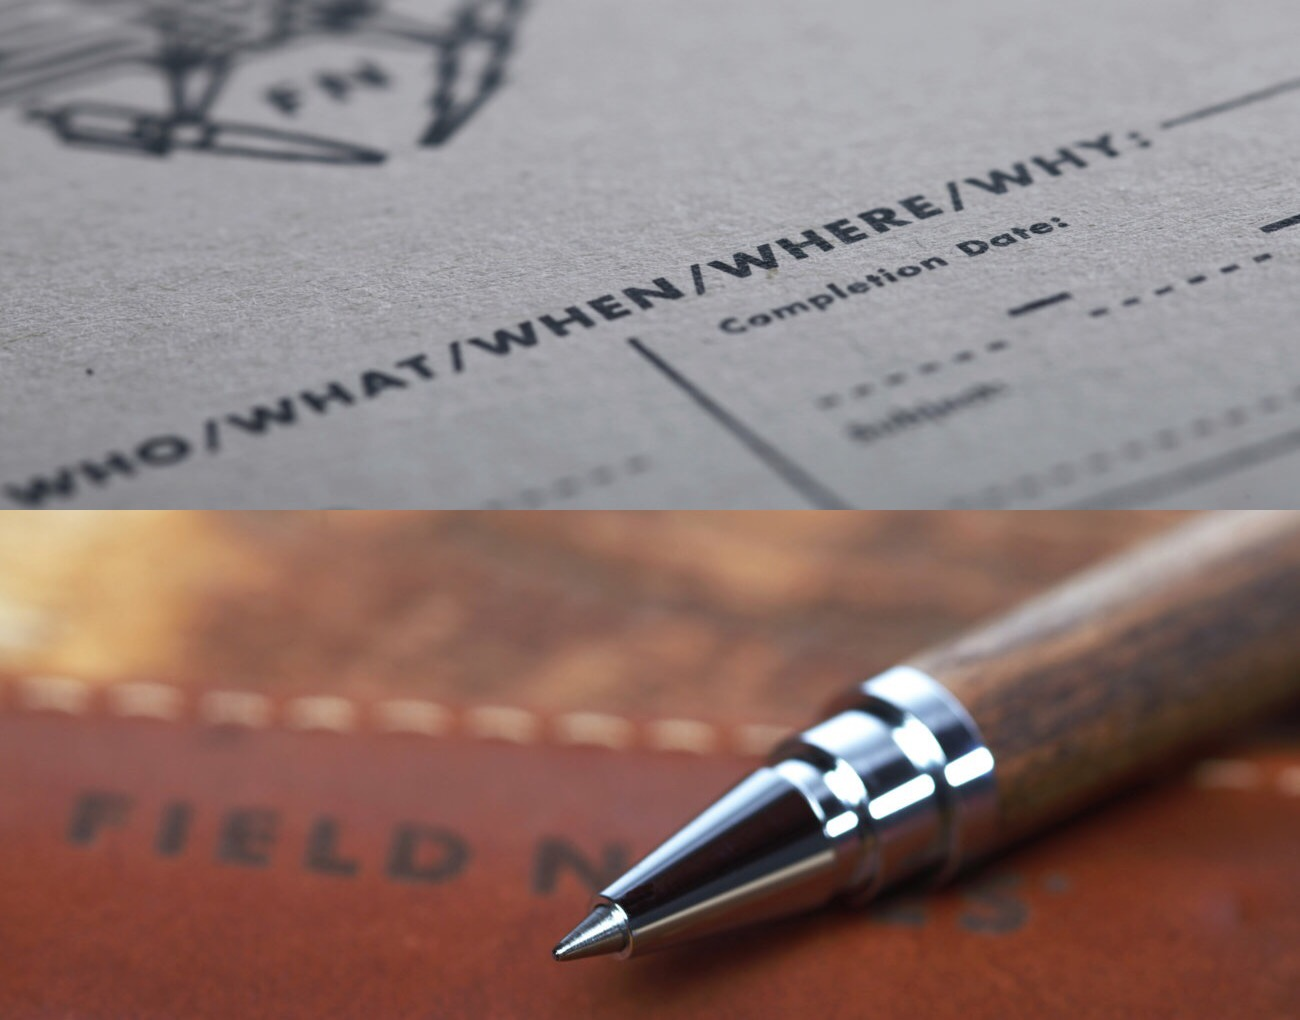 the-field-notes-front-page-notebook-and-brands-hall-rollerball-pen